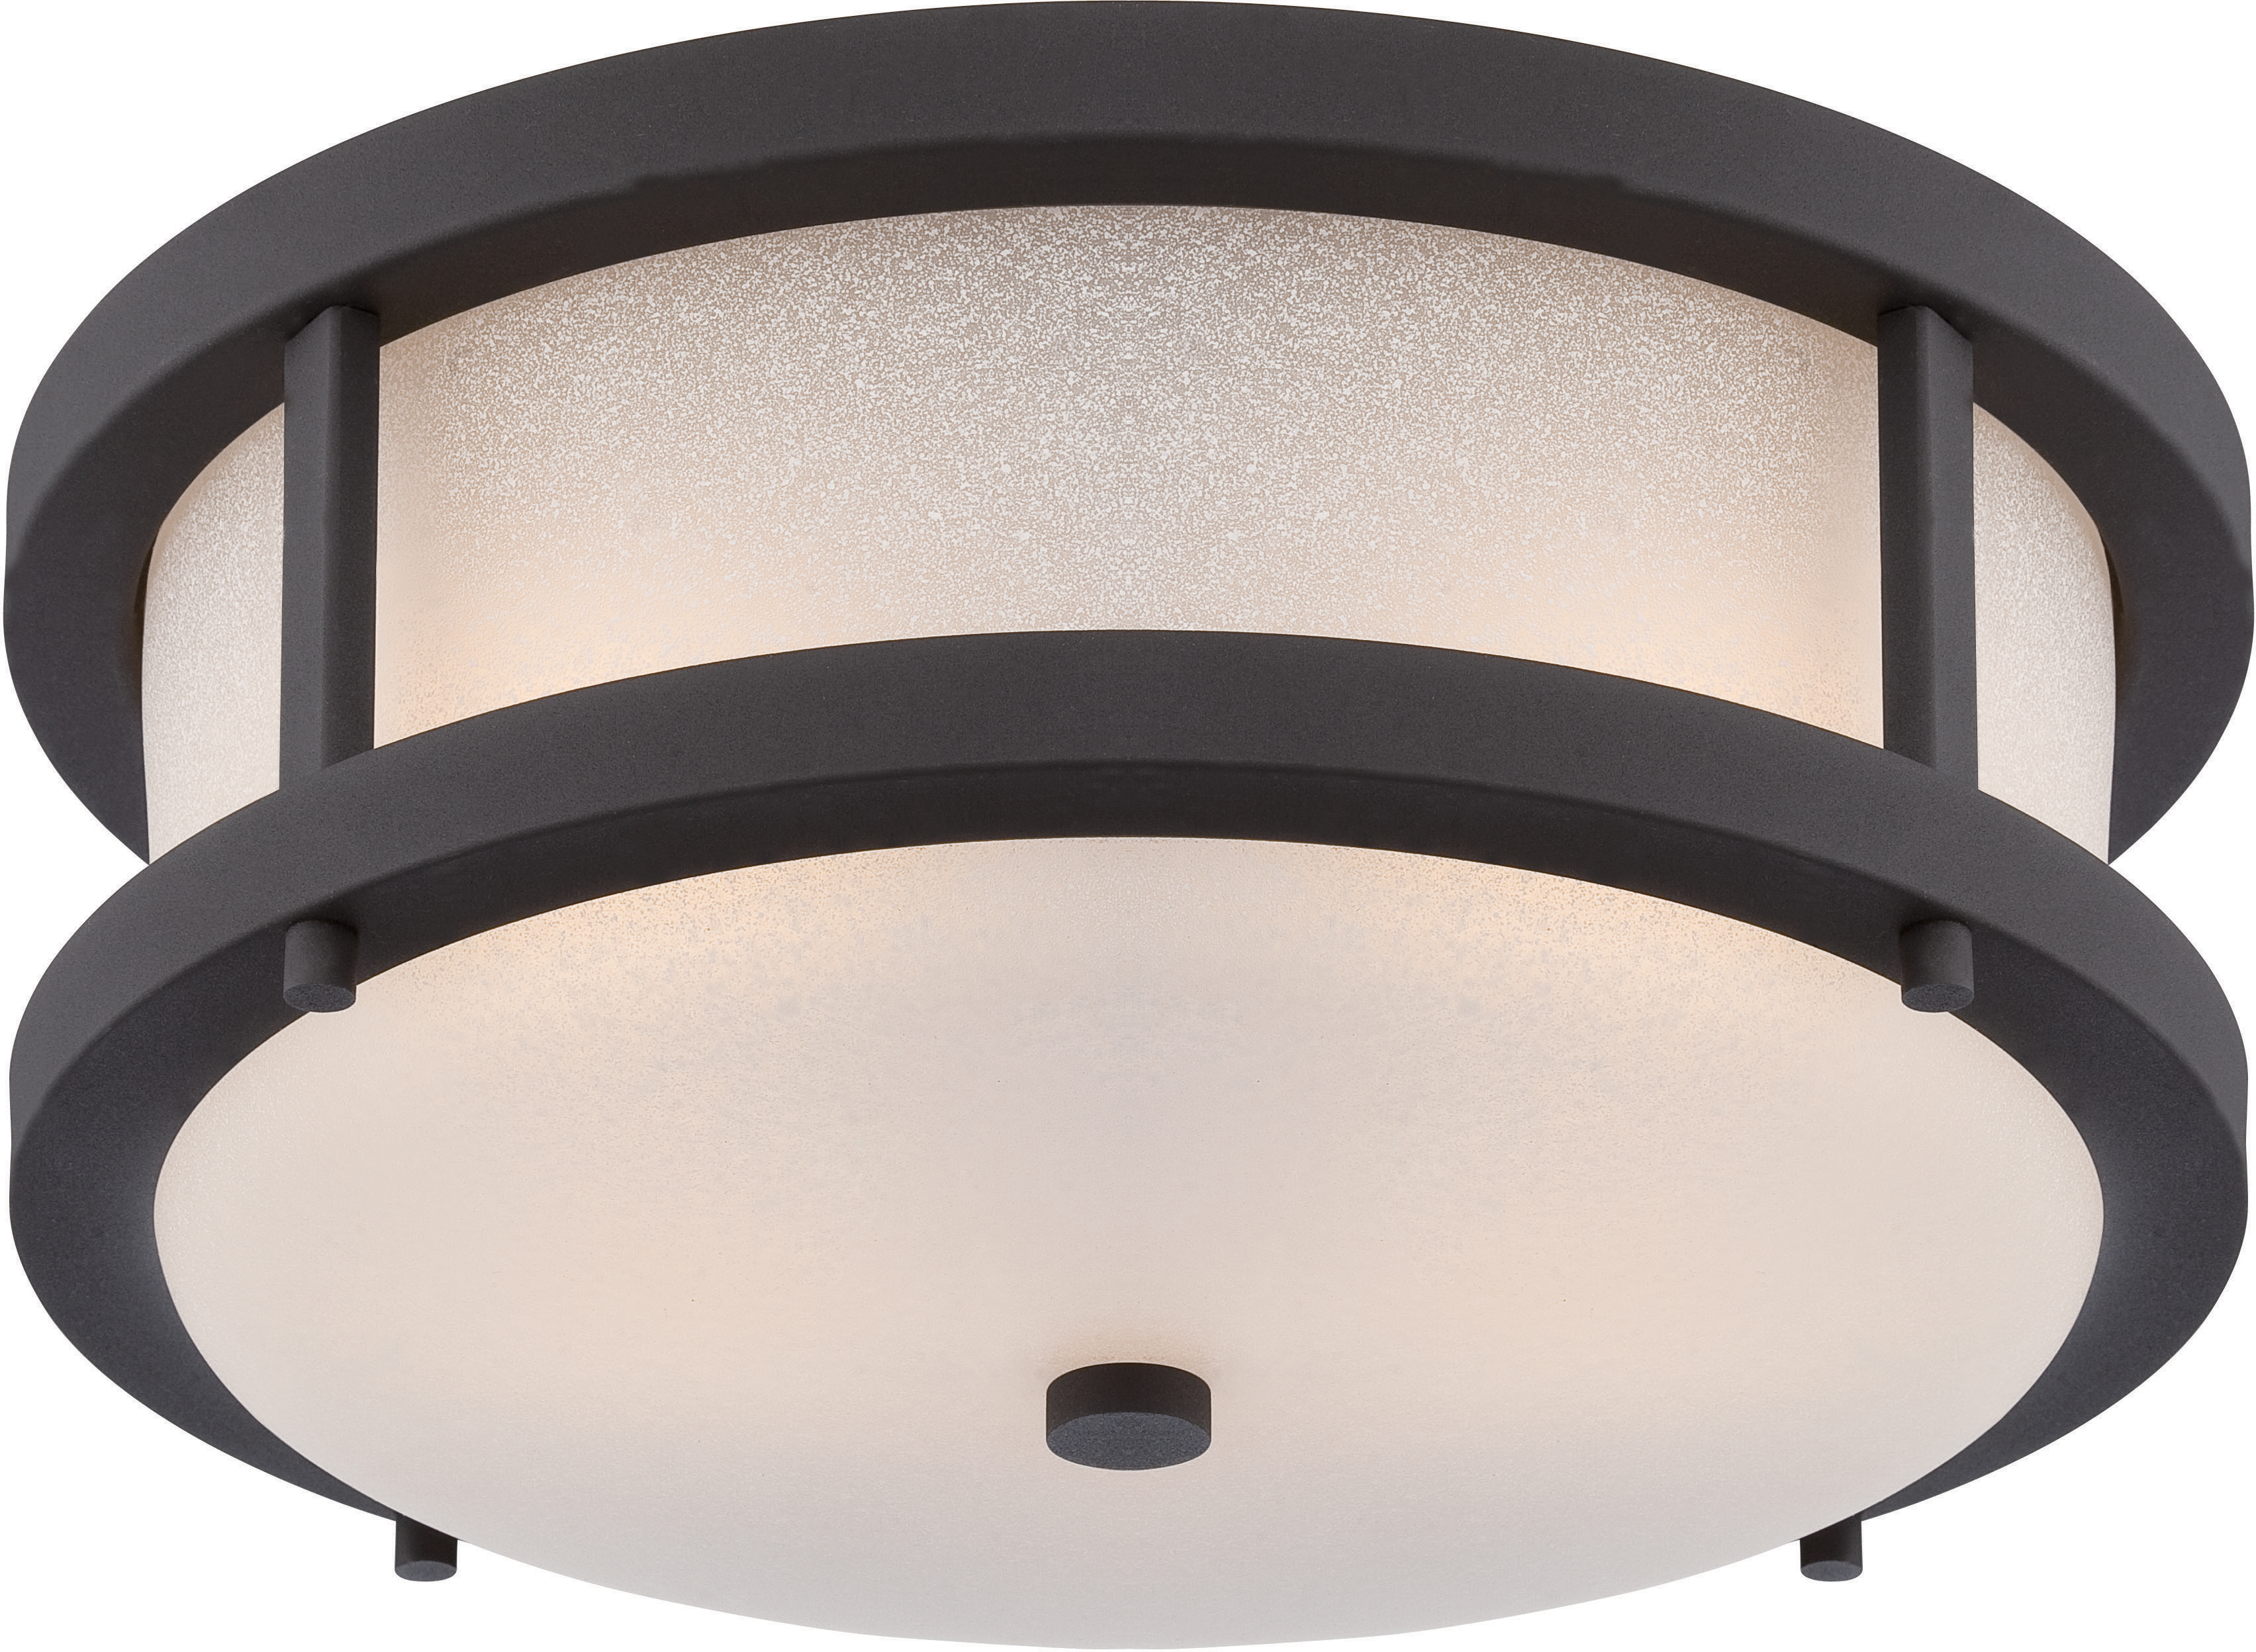 Home Fixtures Nuvo Lighting 62 653 2 Lights 14 Textured Black Outdoor With Antique White Gl Transitional Style Fixture